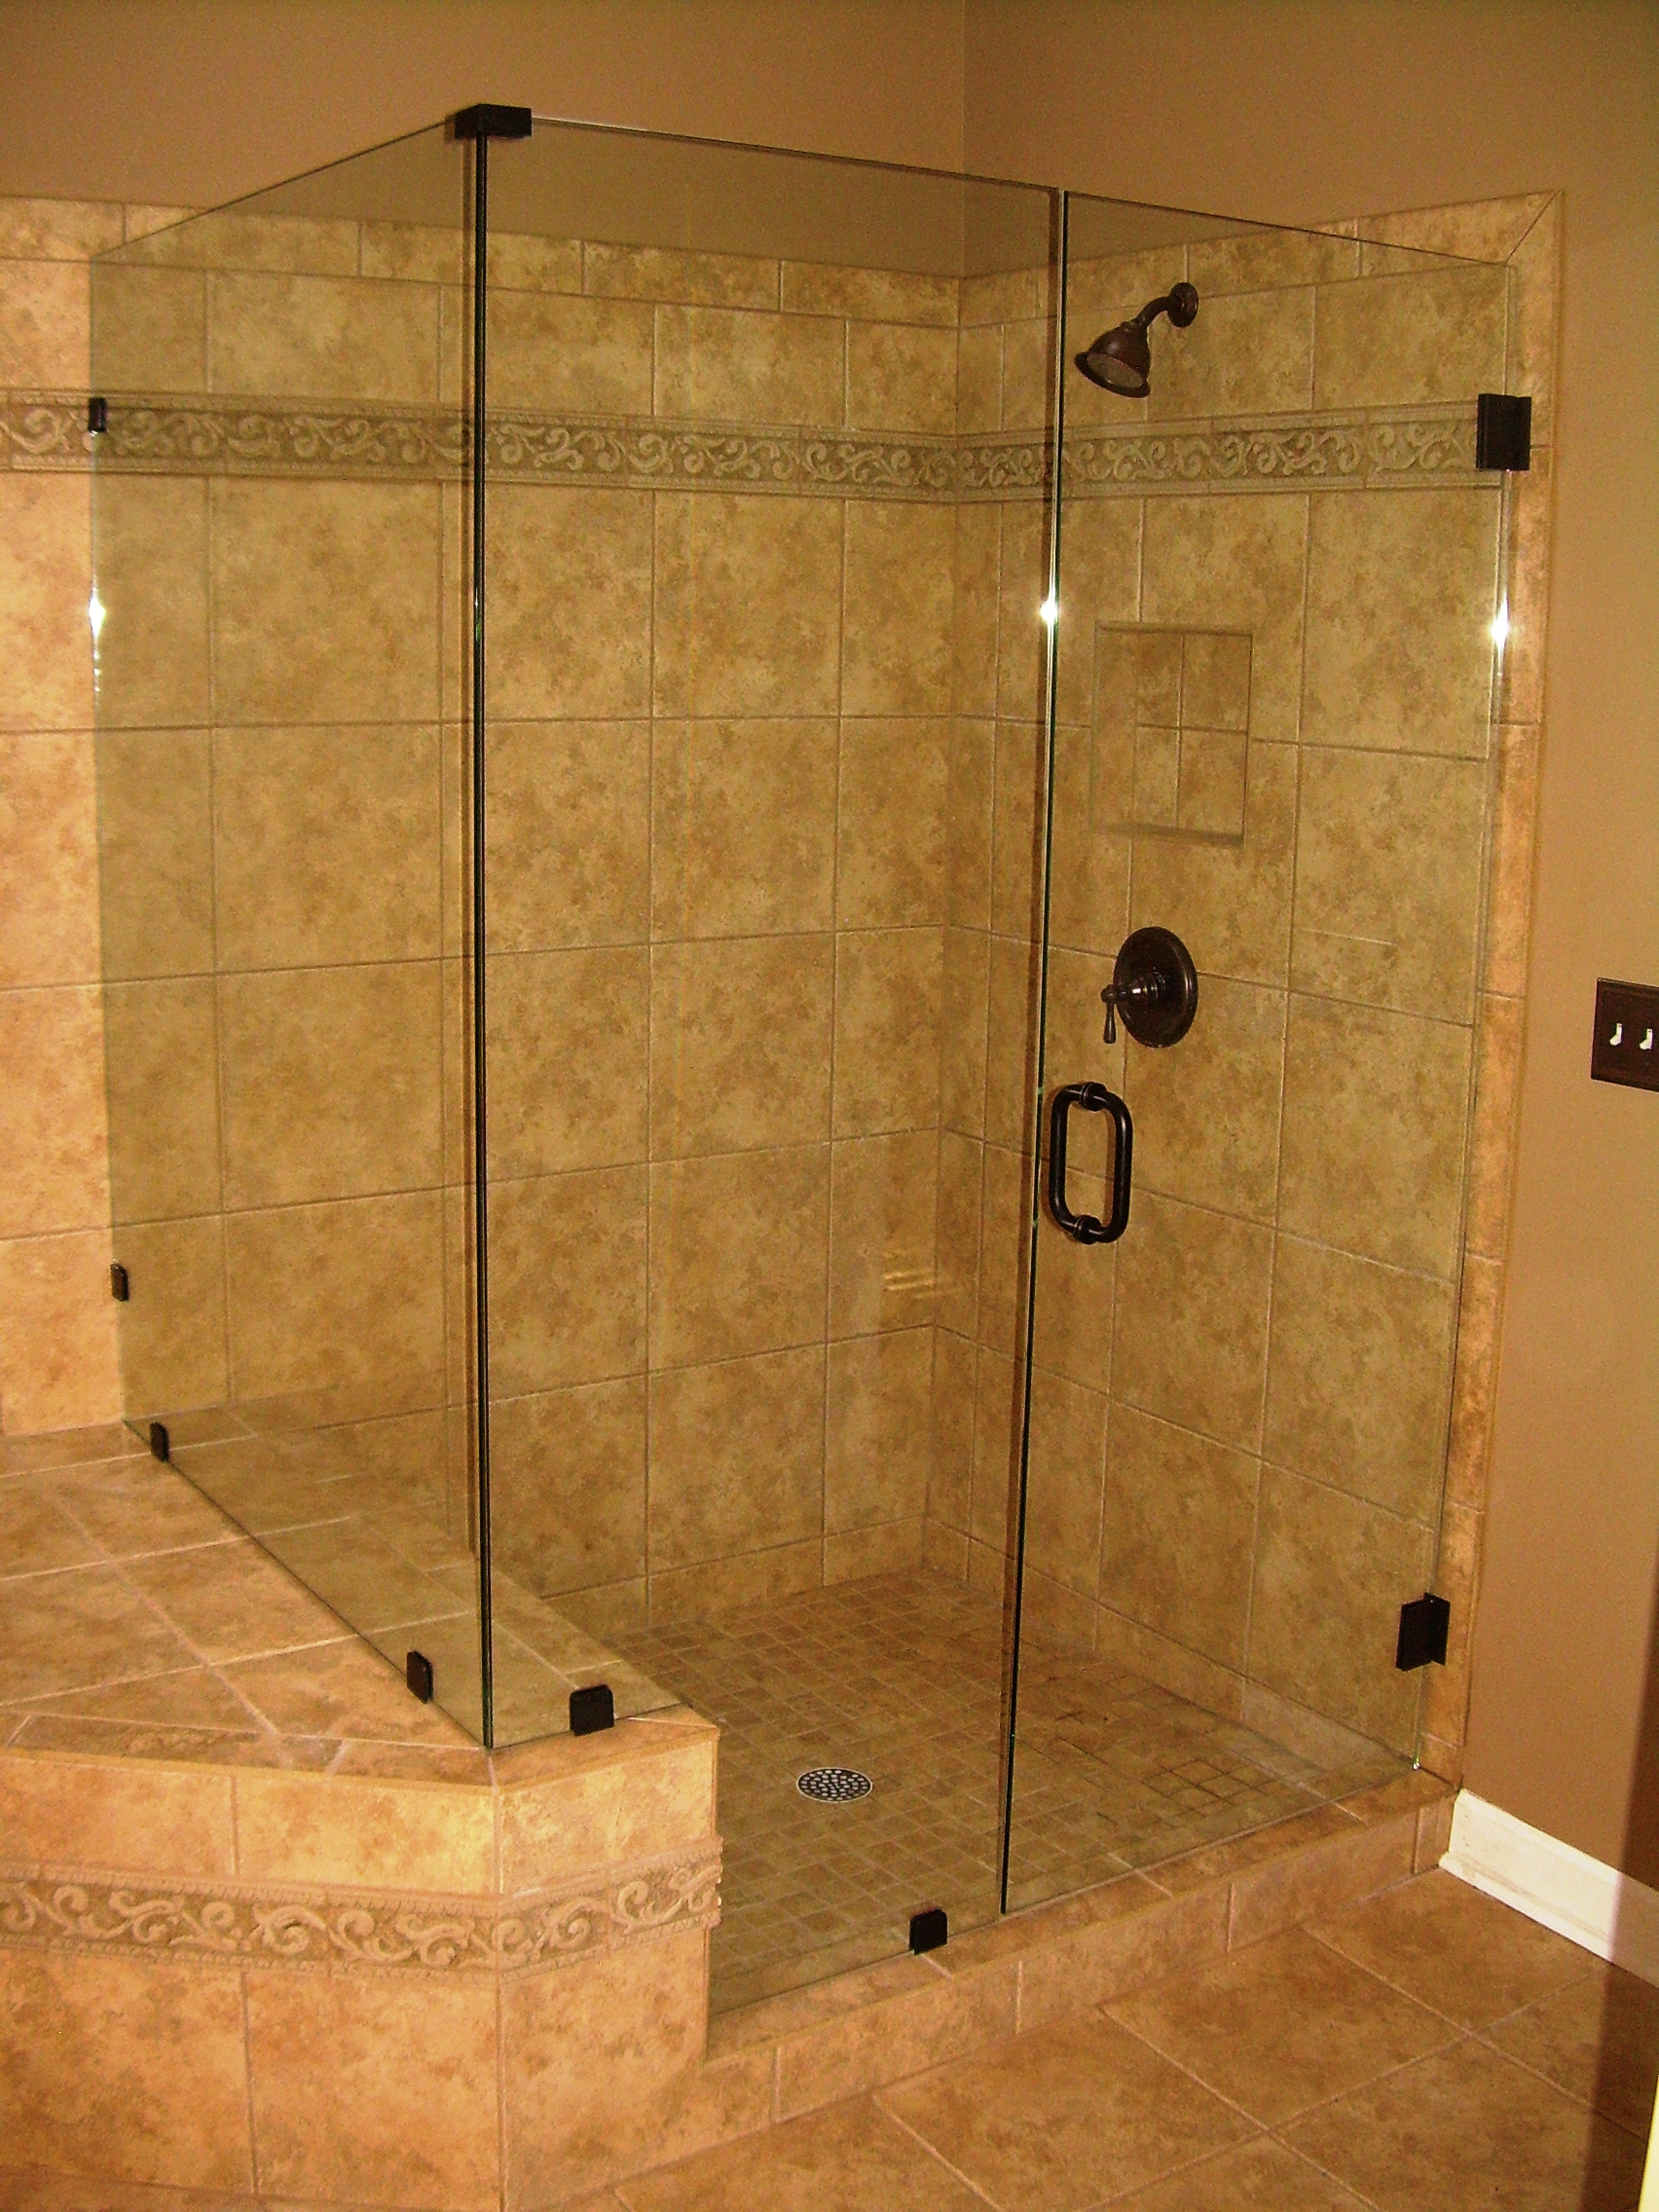 How To Add A Shower To A Small Bathroom - 10 photos of the 10 top rated shower design ideas small bathroom